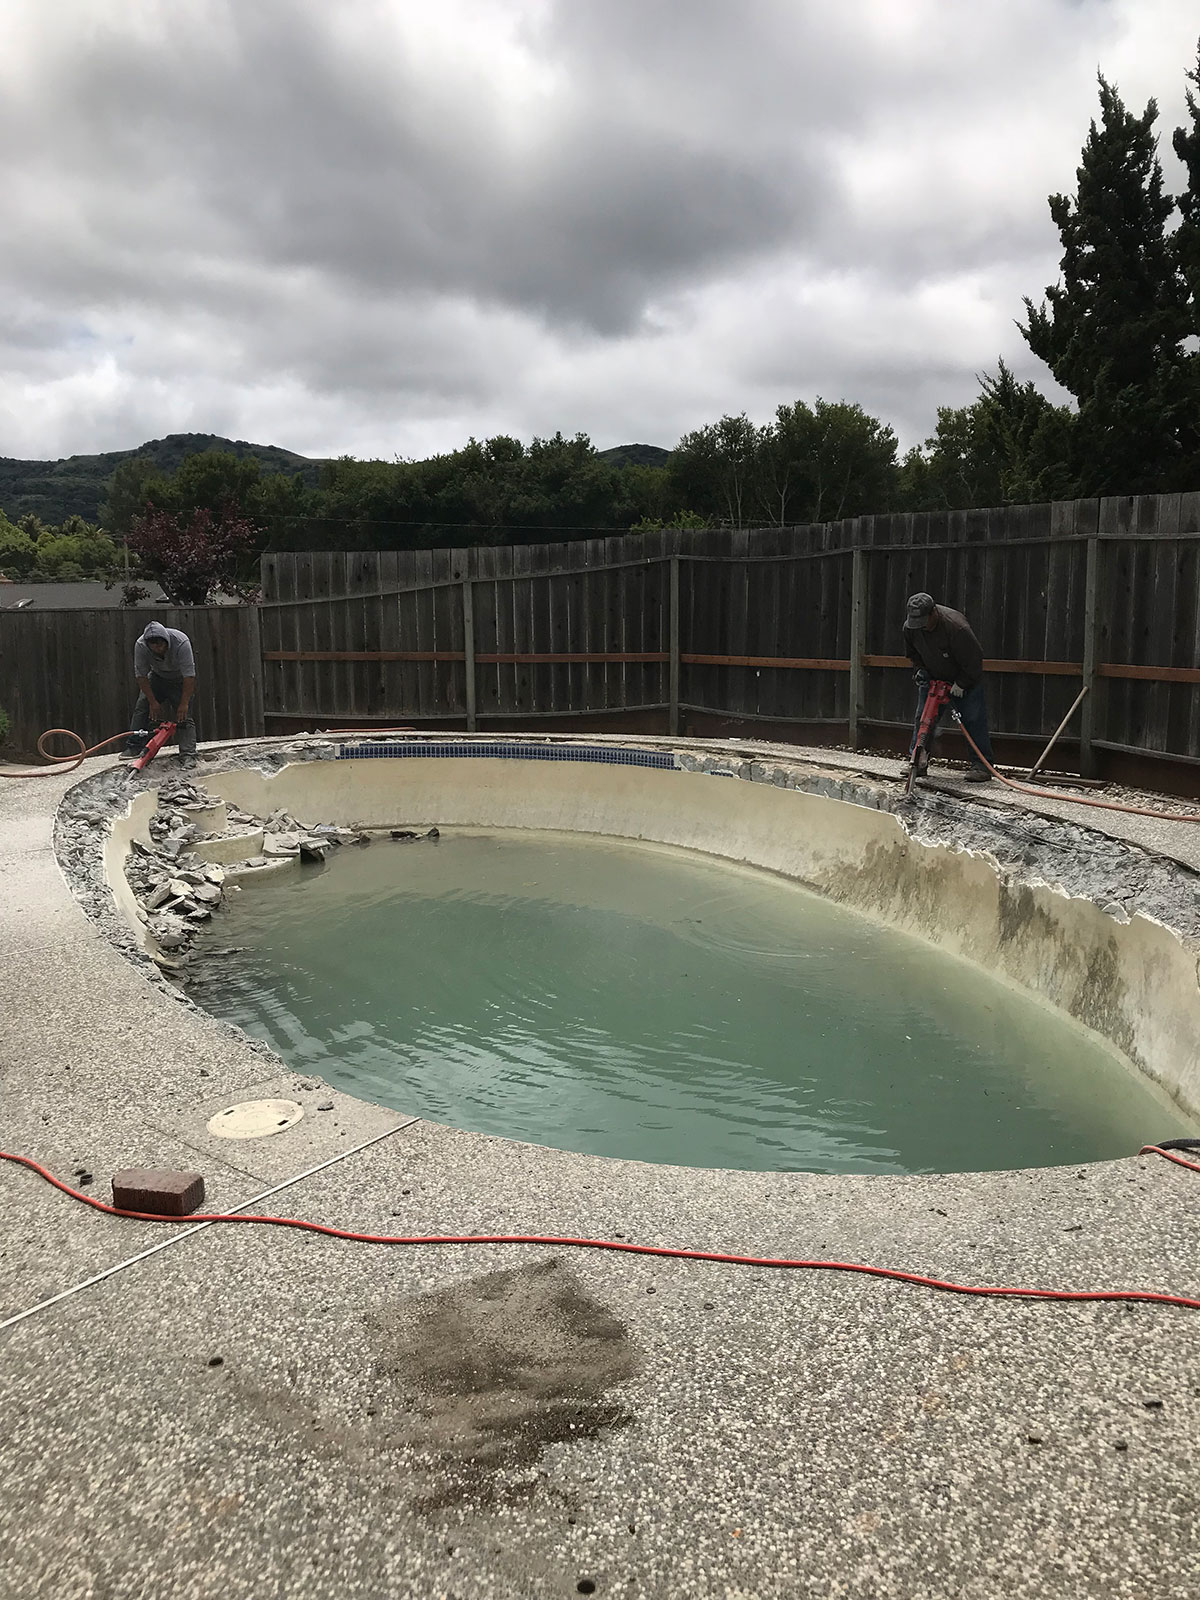 A pool demolition job in progress